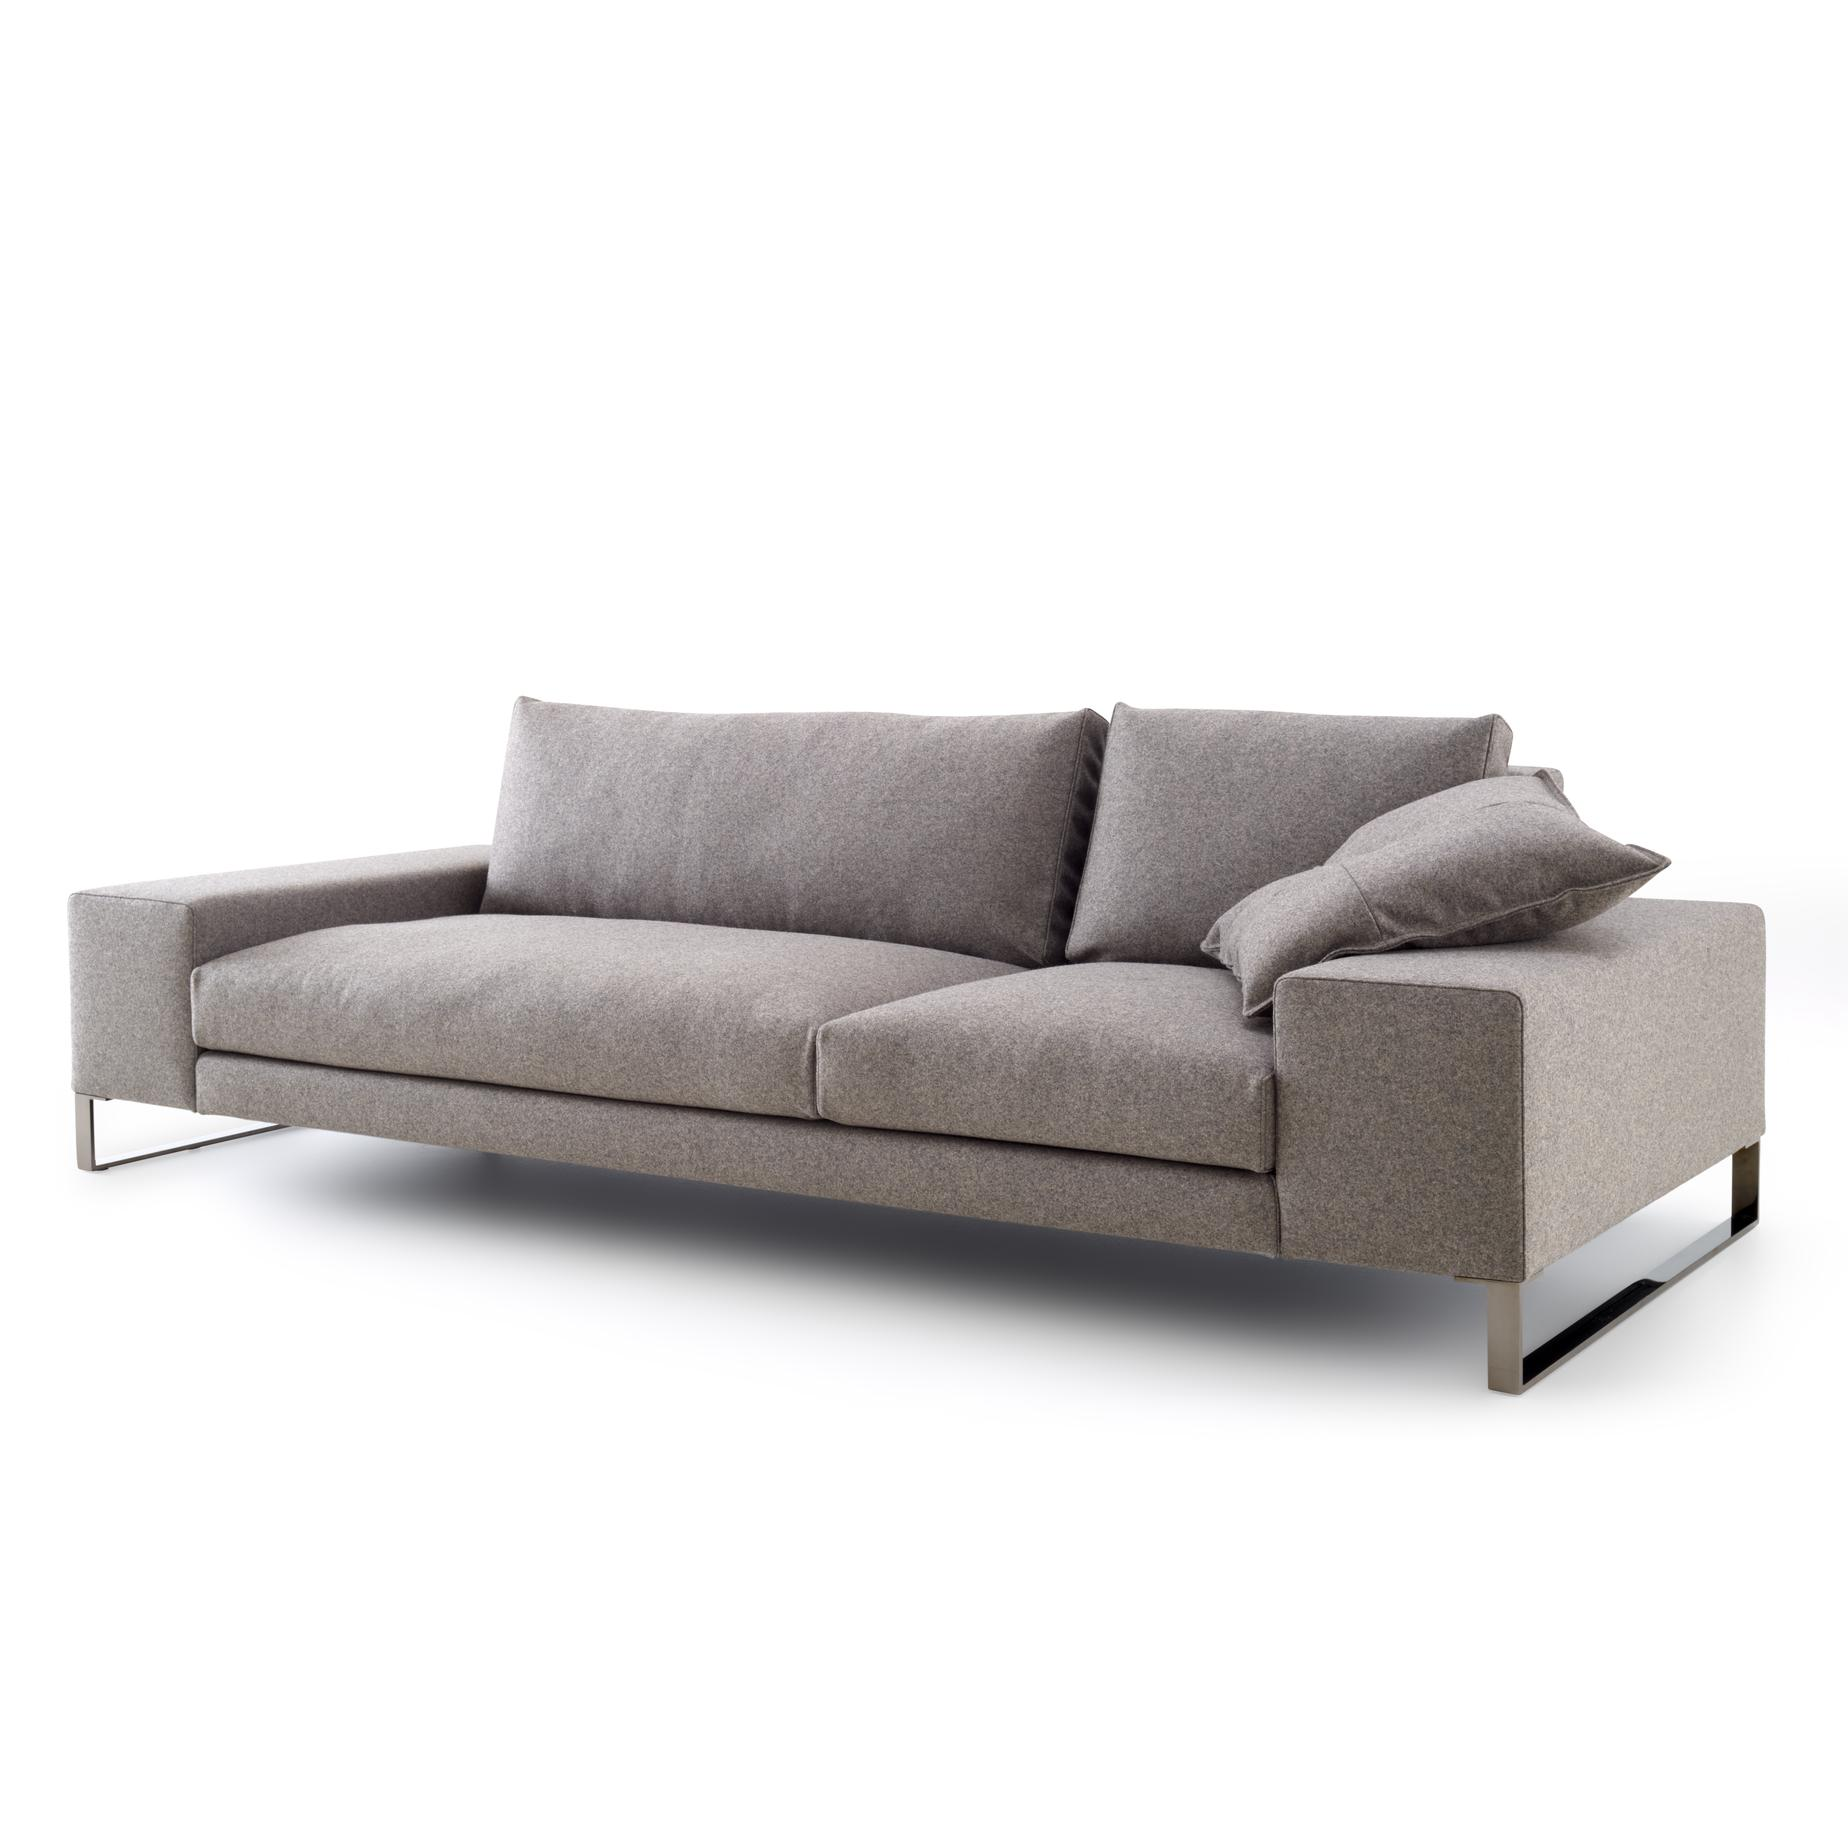 Remarkable Exclusif 2 Sofas Designer Didier Gomez Ligne Roset Ocoug Best Dining Table And Chair Ideas Images Ocougorg